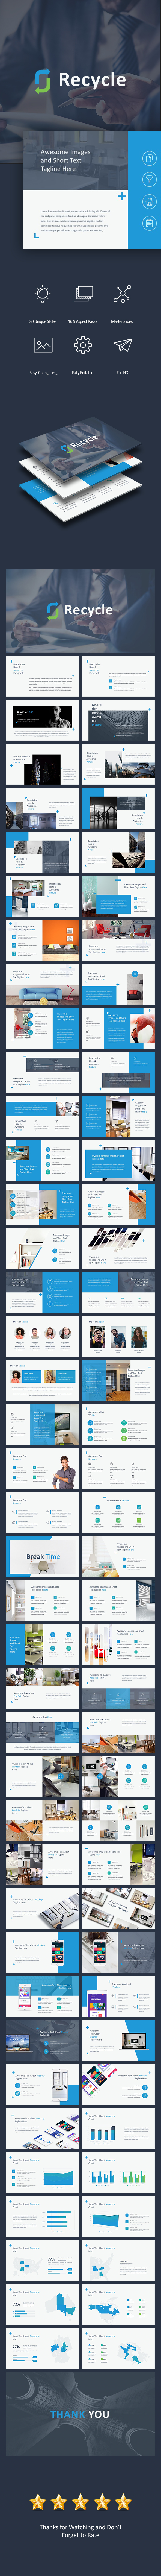 GraphicRiver Recycle Pitch Deck Keynote 20956161